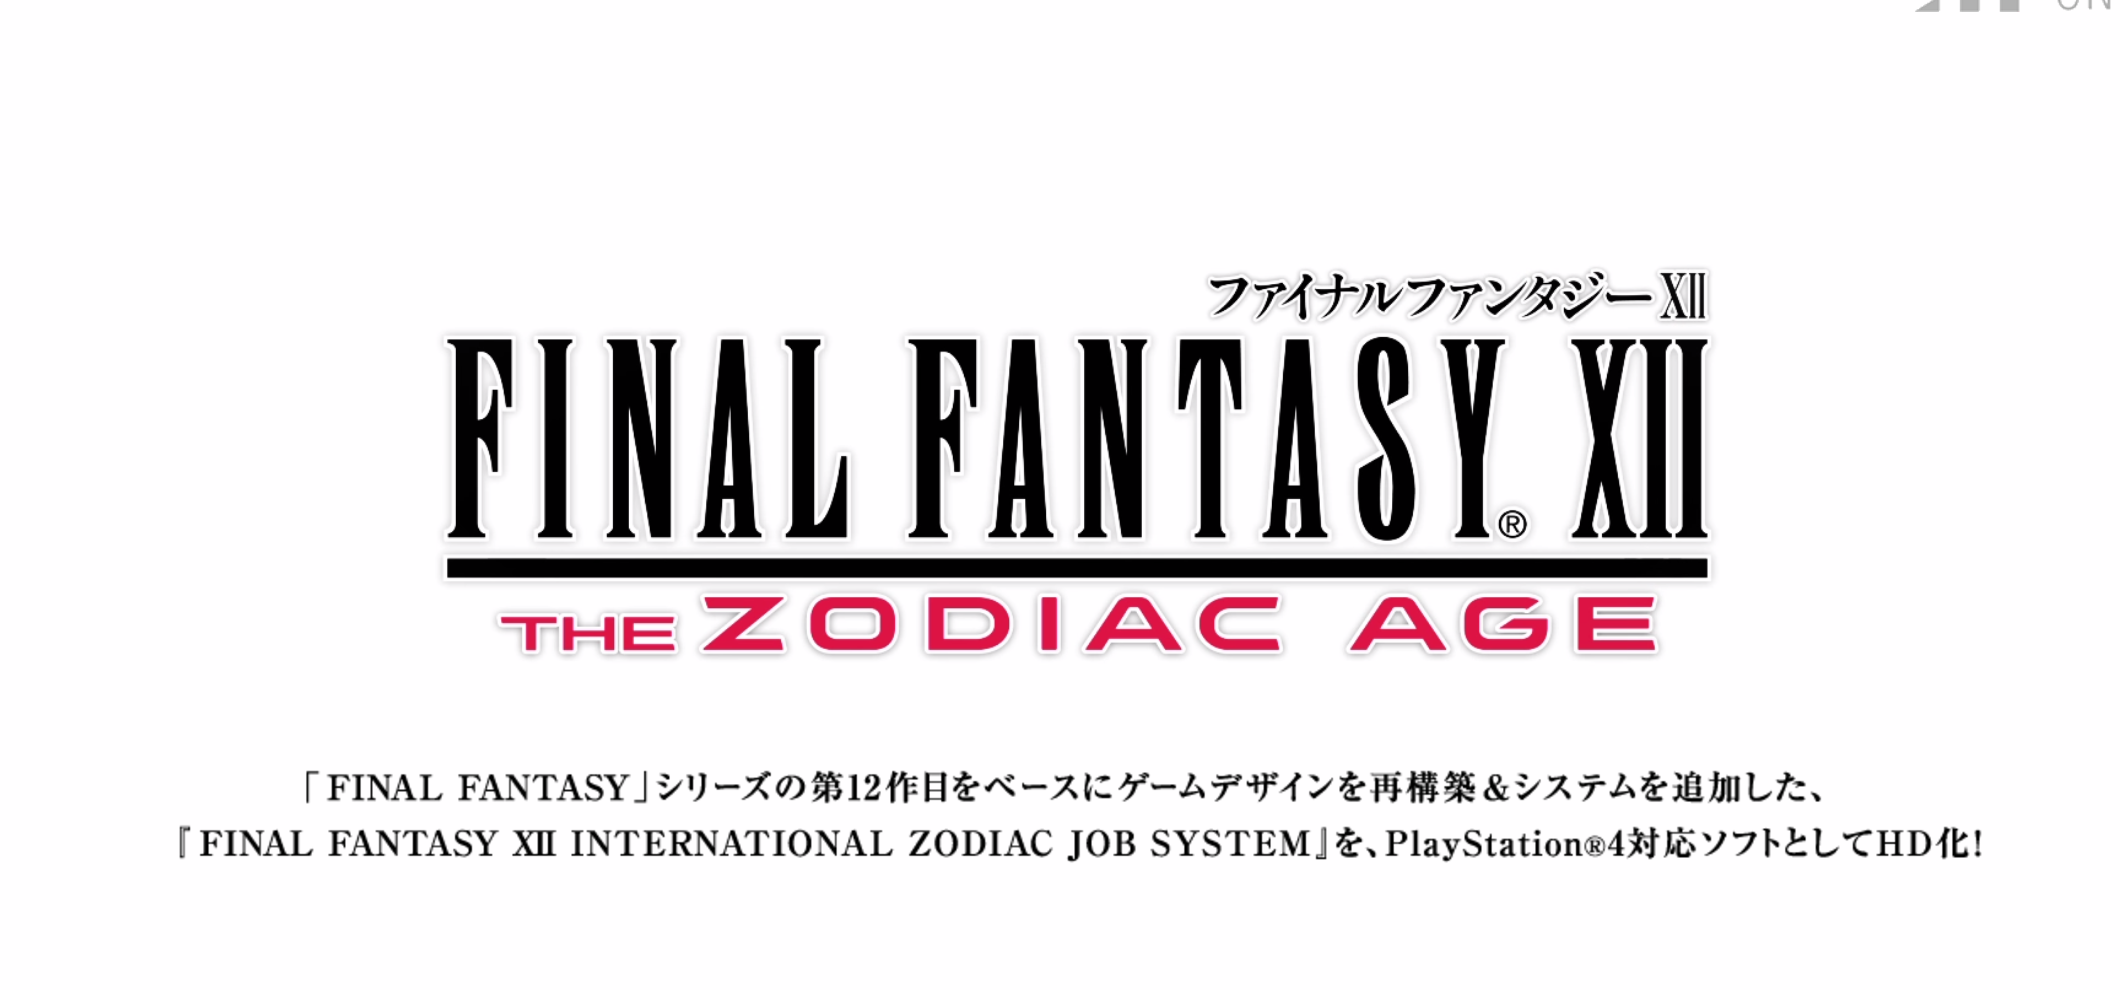 Final-Fantasy-XII-The-Zodiac-Age-Trailer